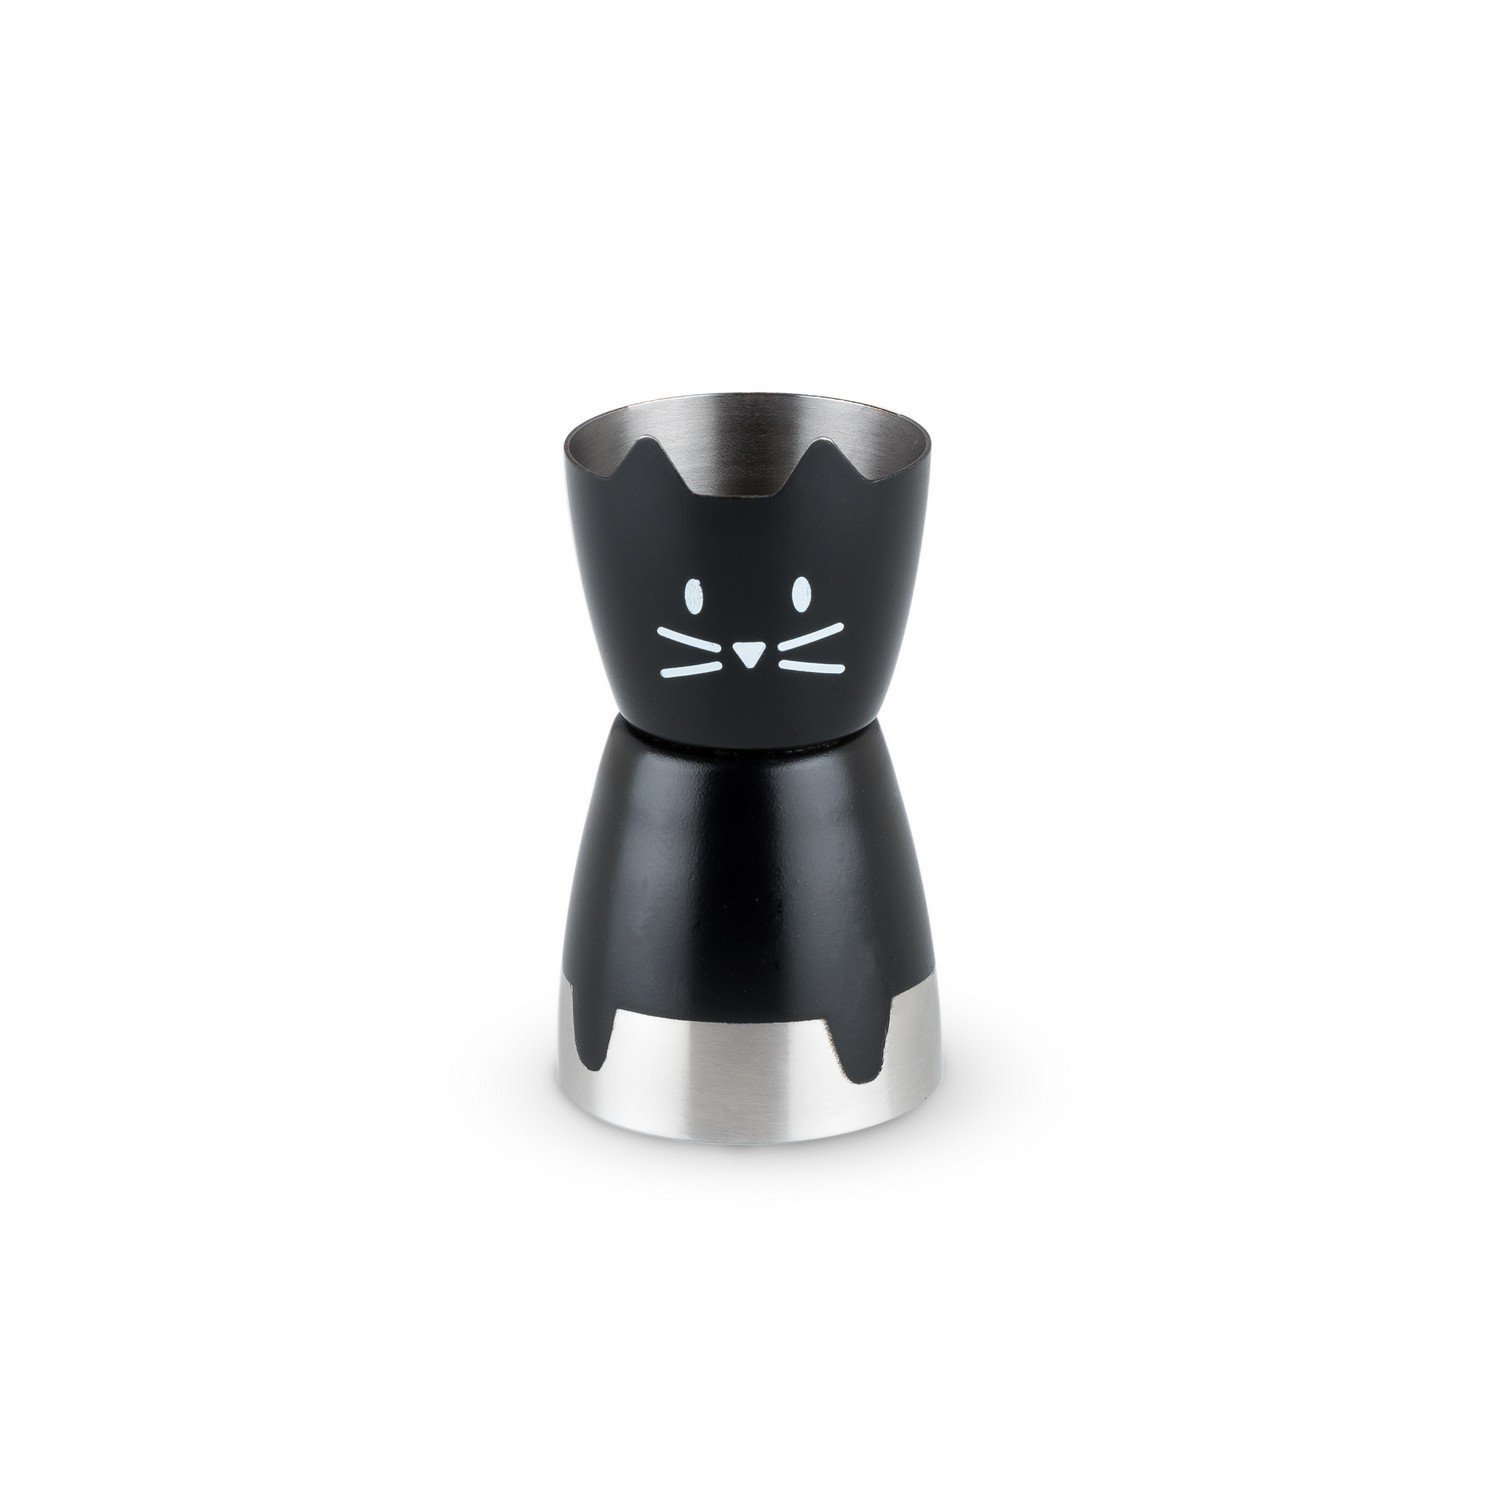 Jigger Stainless Steel, Cute Black Cat Cocktail Double Jigger by True